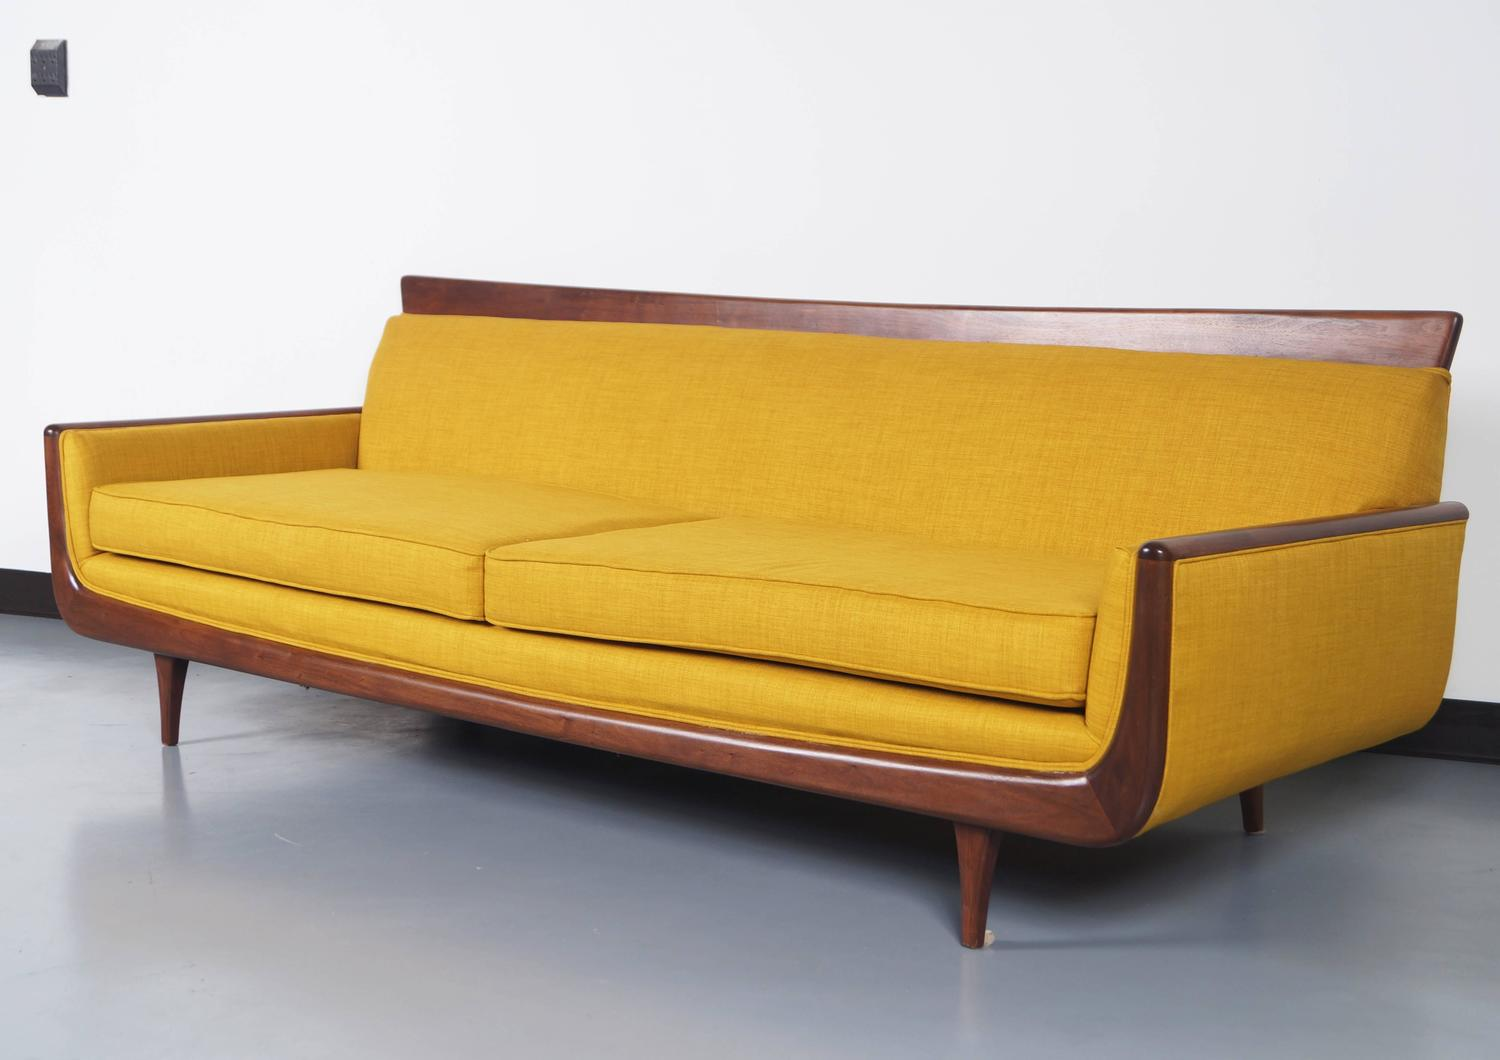 Mid century modern walnut sofa at 1stdibs for I contemporary furniture